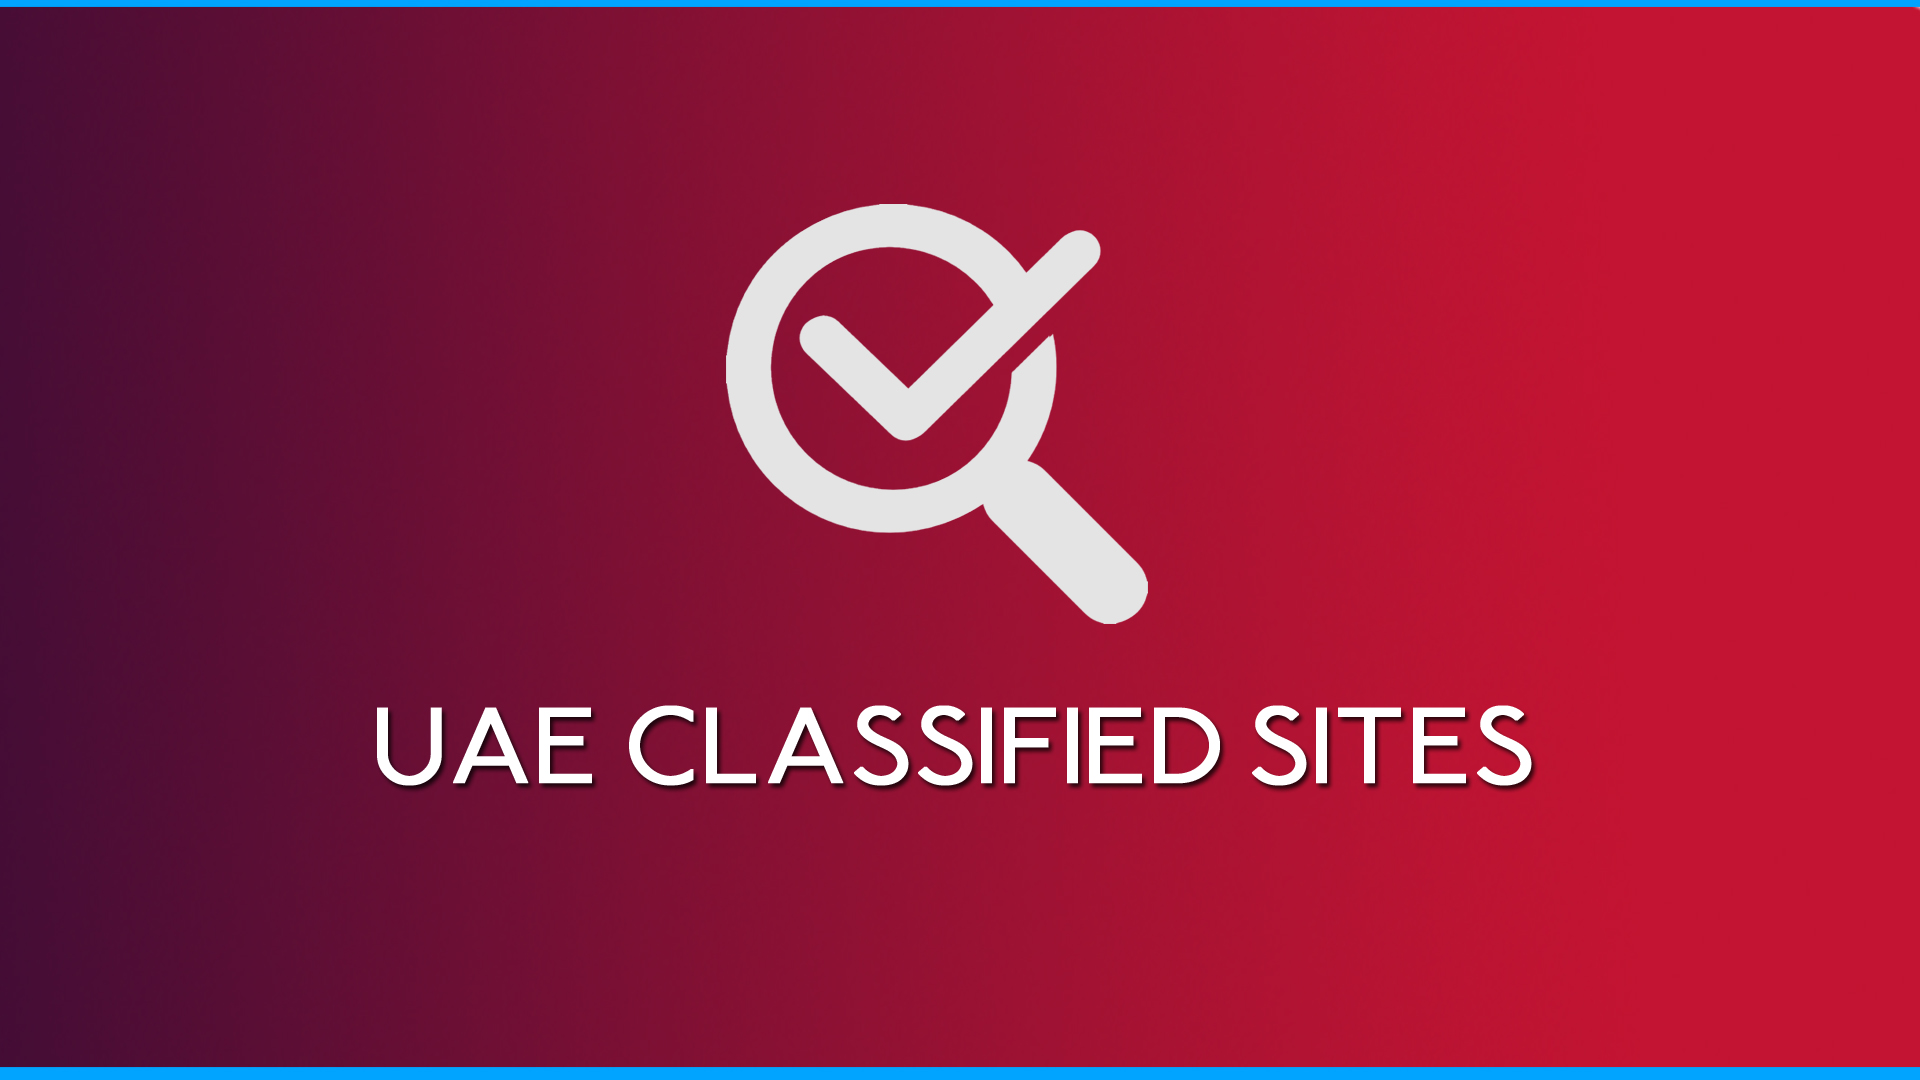 What Are the Advantages of Classified Sites in Dubai?